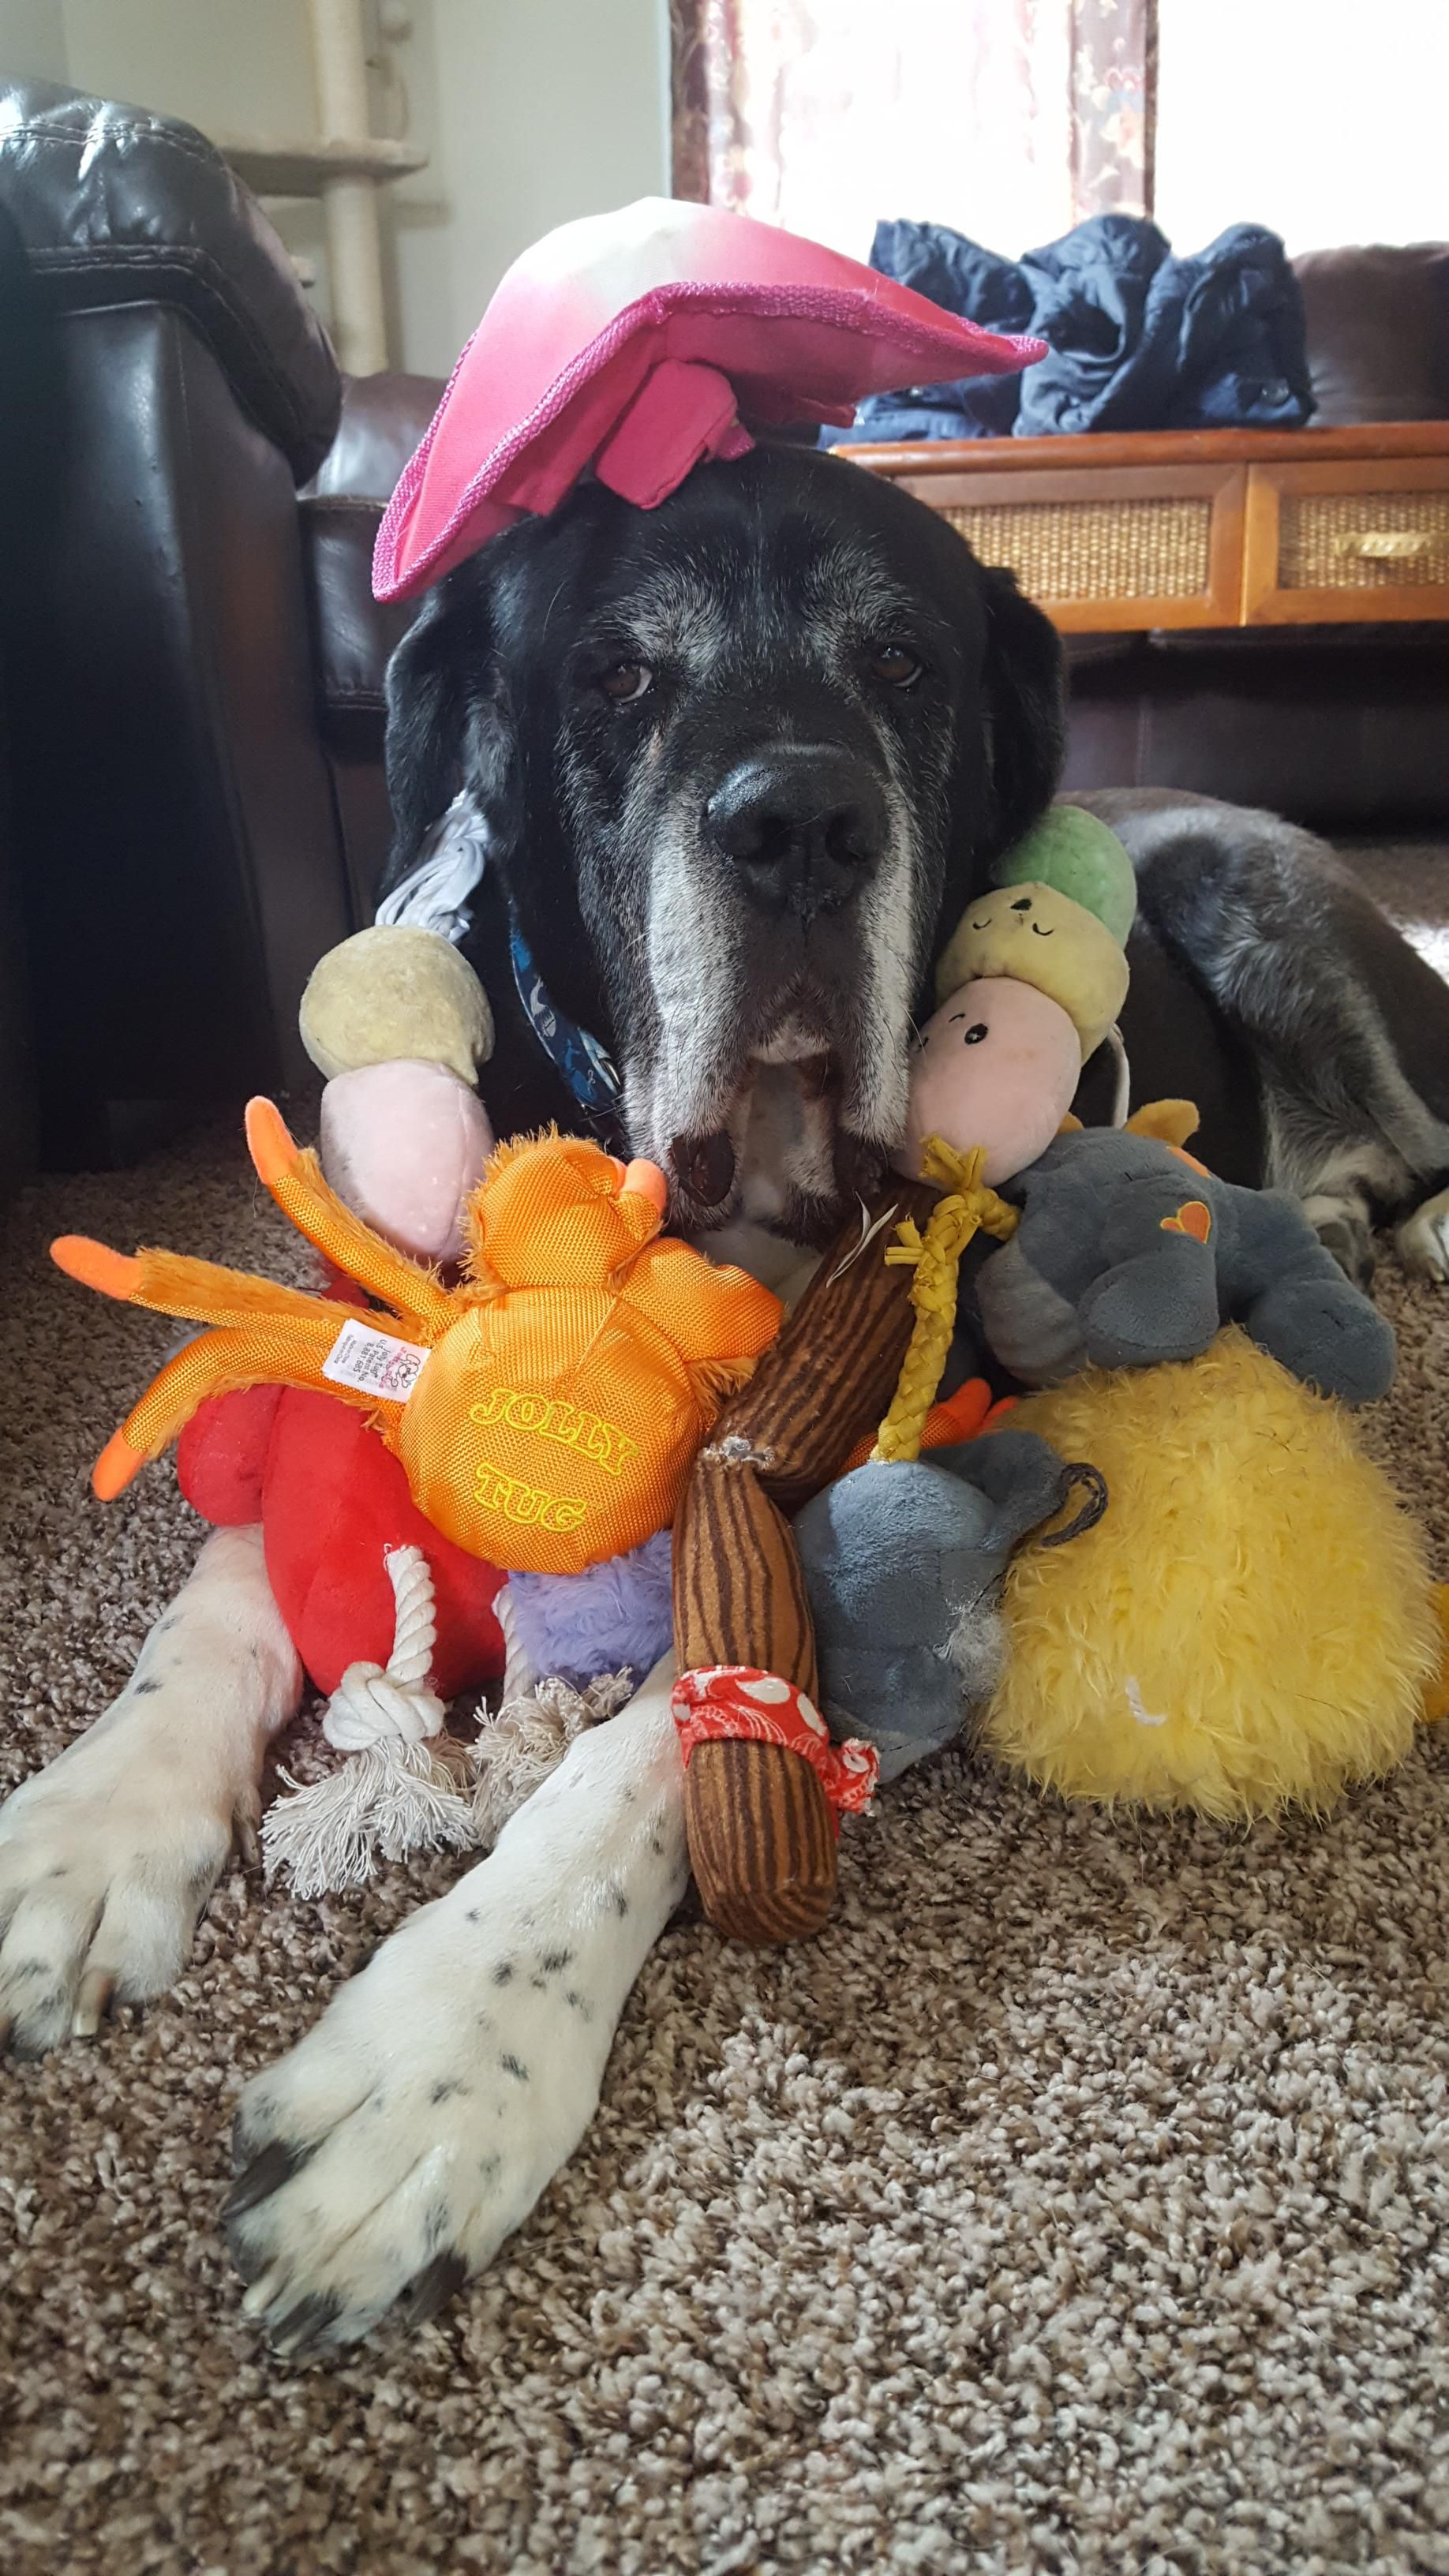 One Of My Dogs Doesn T Like Toys So I Stacked All Of The Other